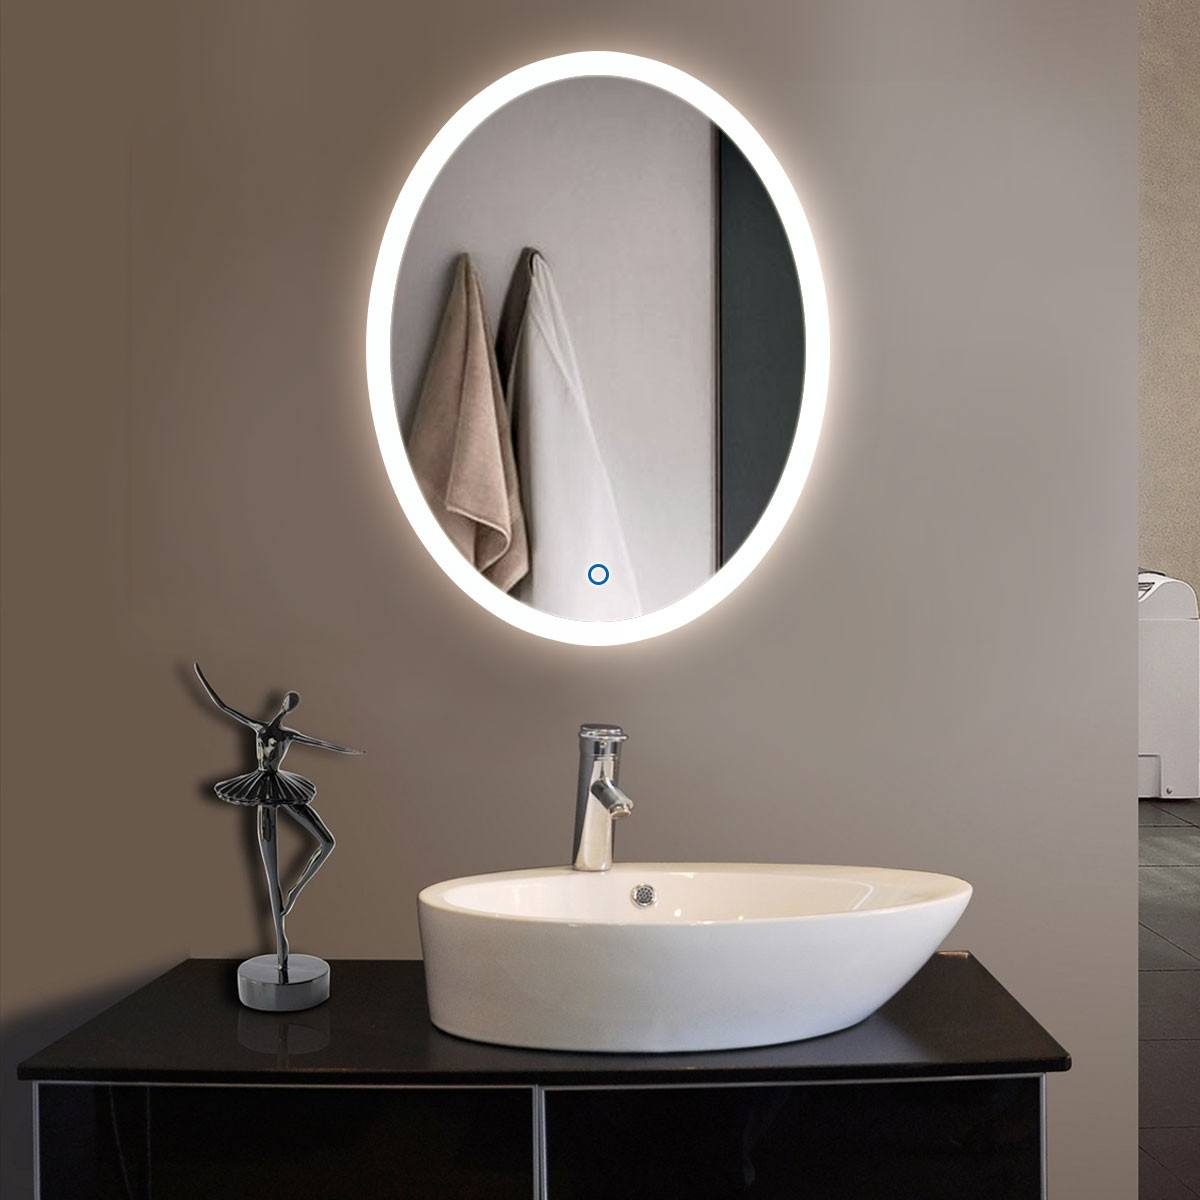 Bathroom Mirrors With Led Lights Sale 24 X 32 In Vertical Oval Led Bathroom Silvered Mirror With